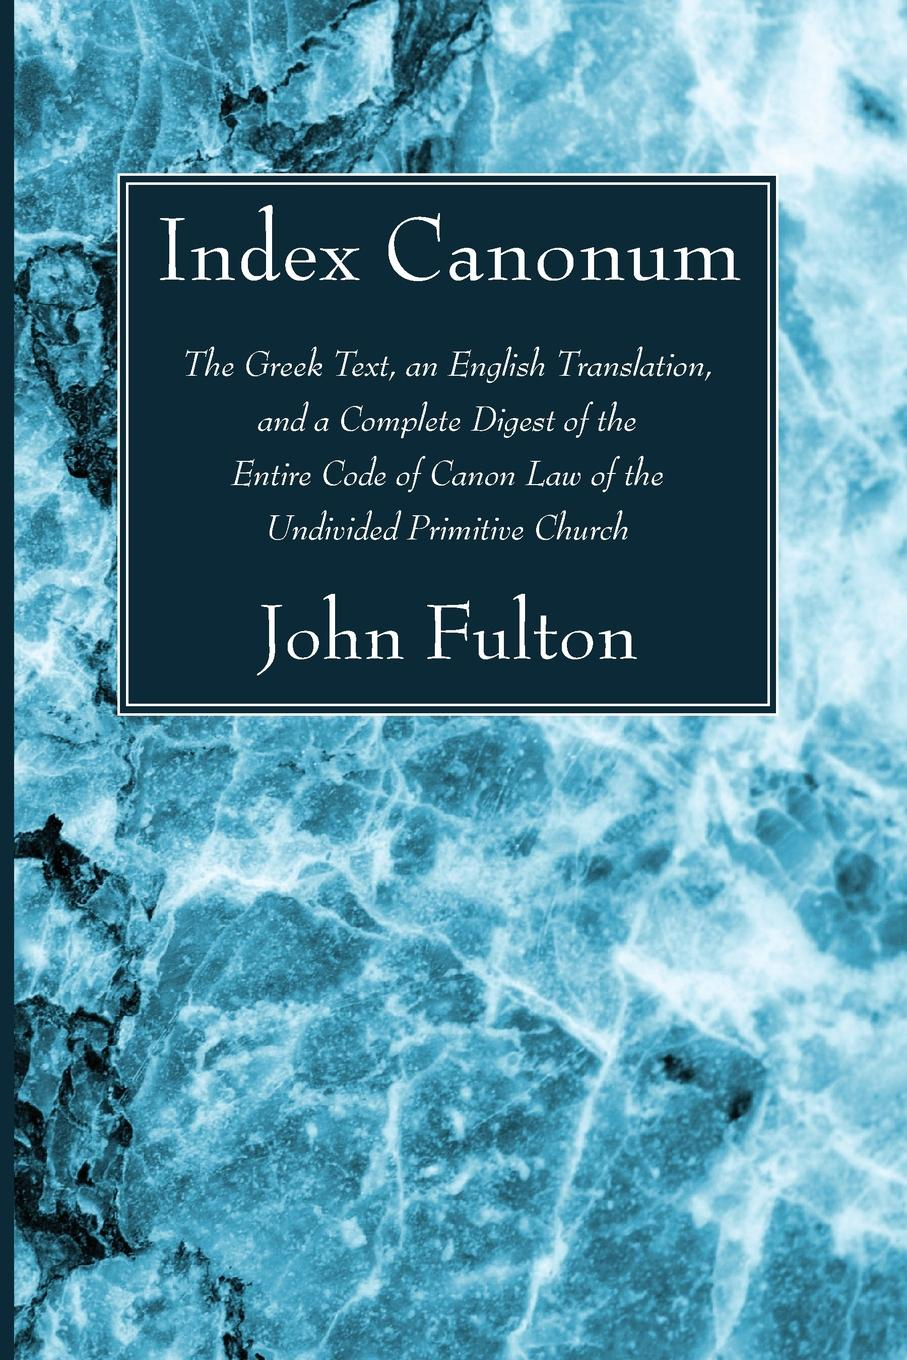 John Ed Fulton Index Canonum. The Greek Text, an English Translation, and a Complete Digest of the Entire Code Canon Law Undivided Primiti